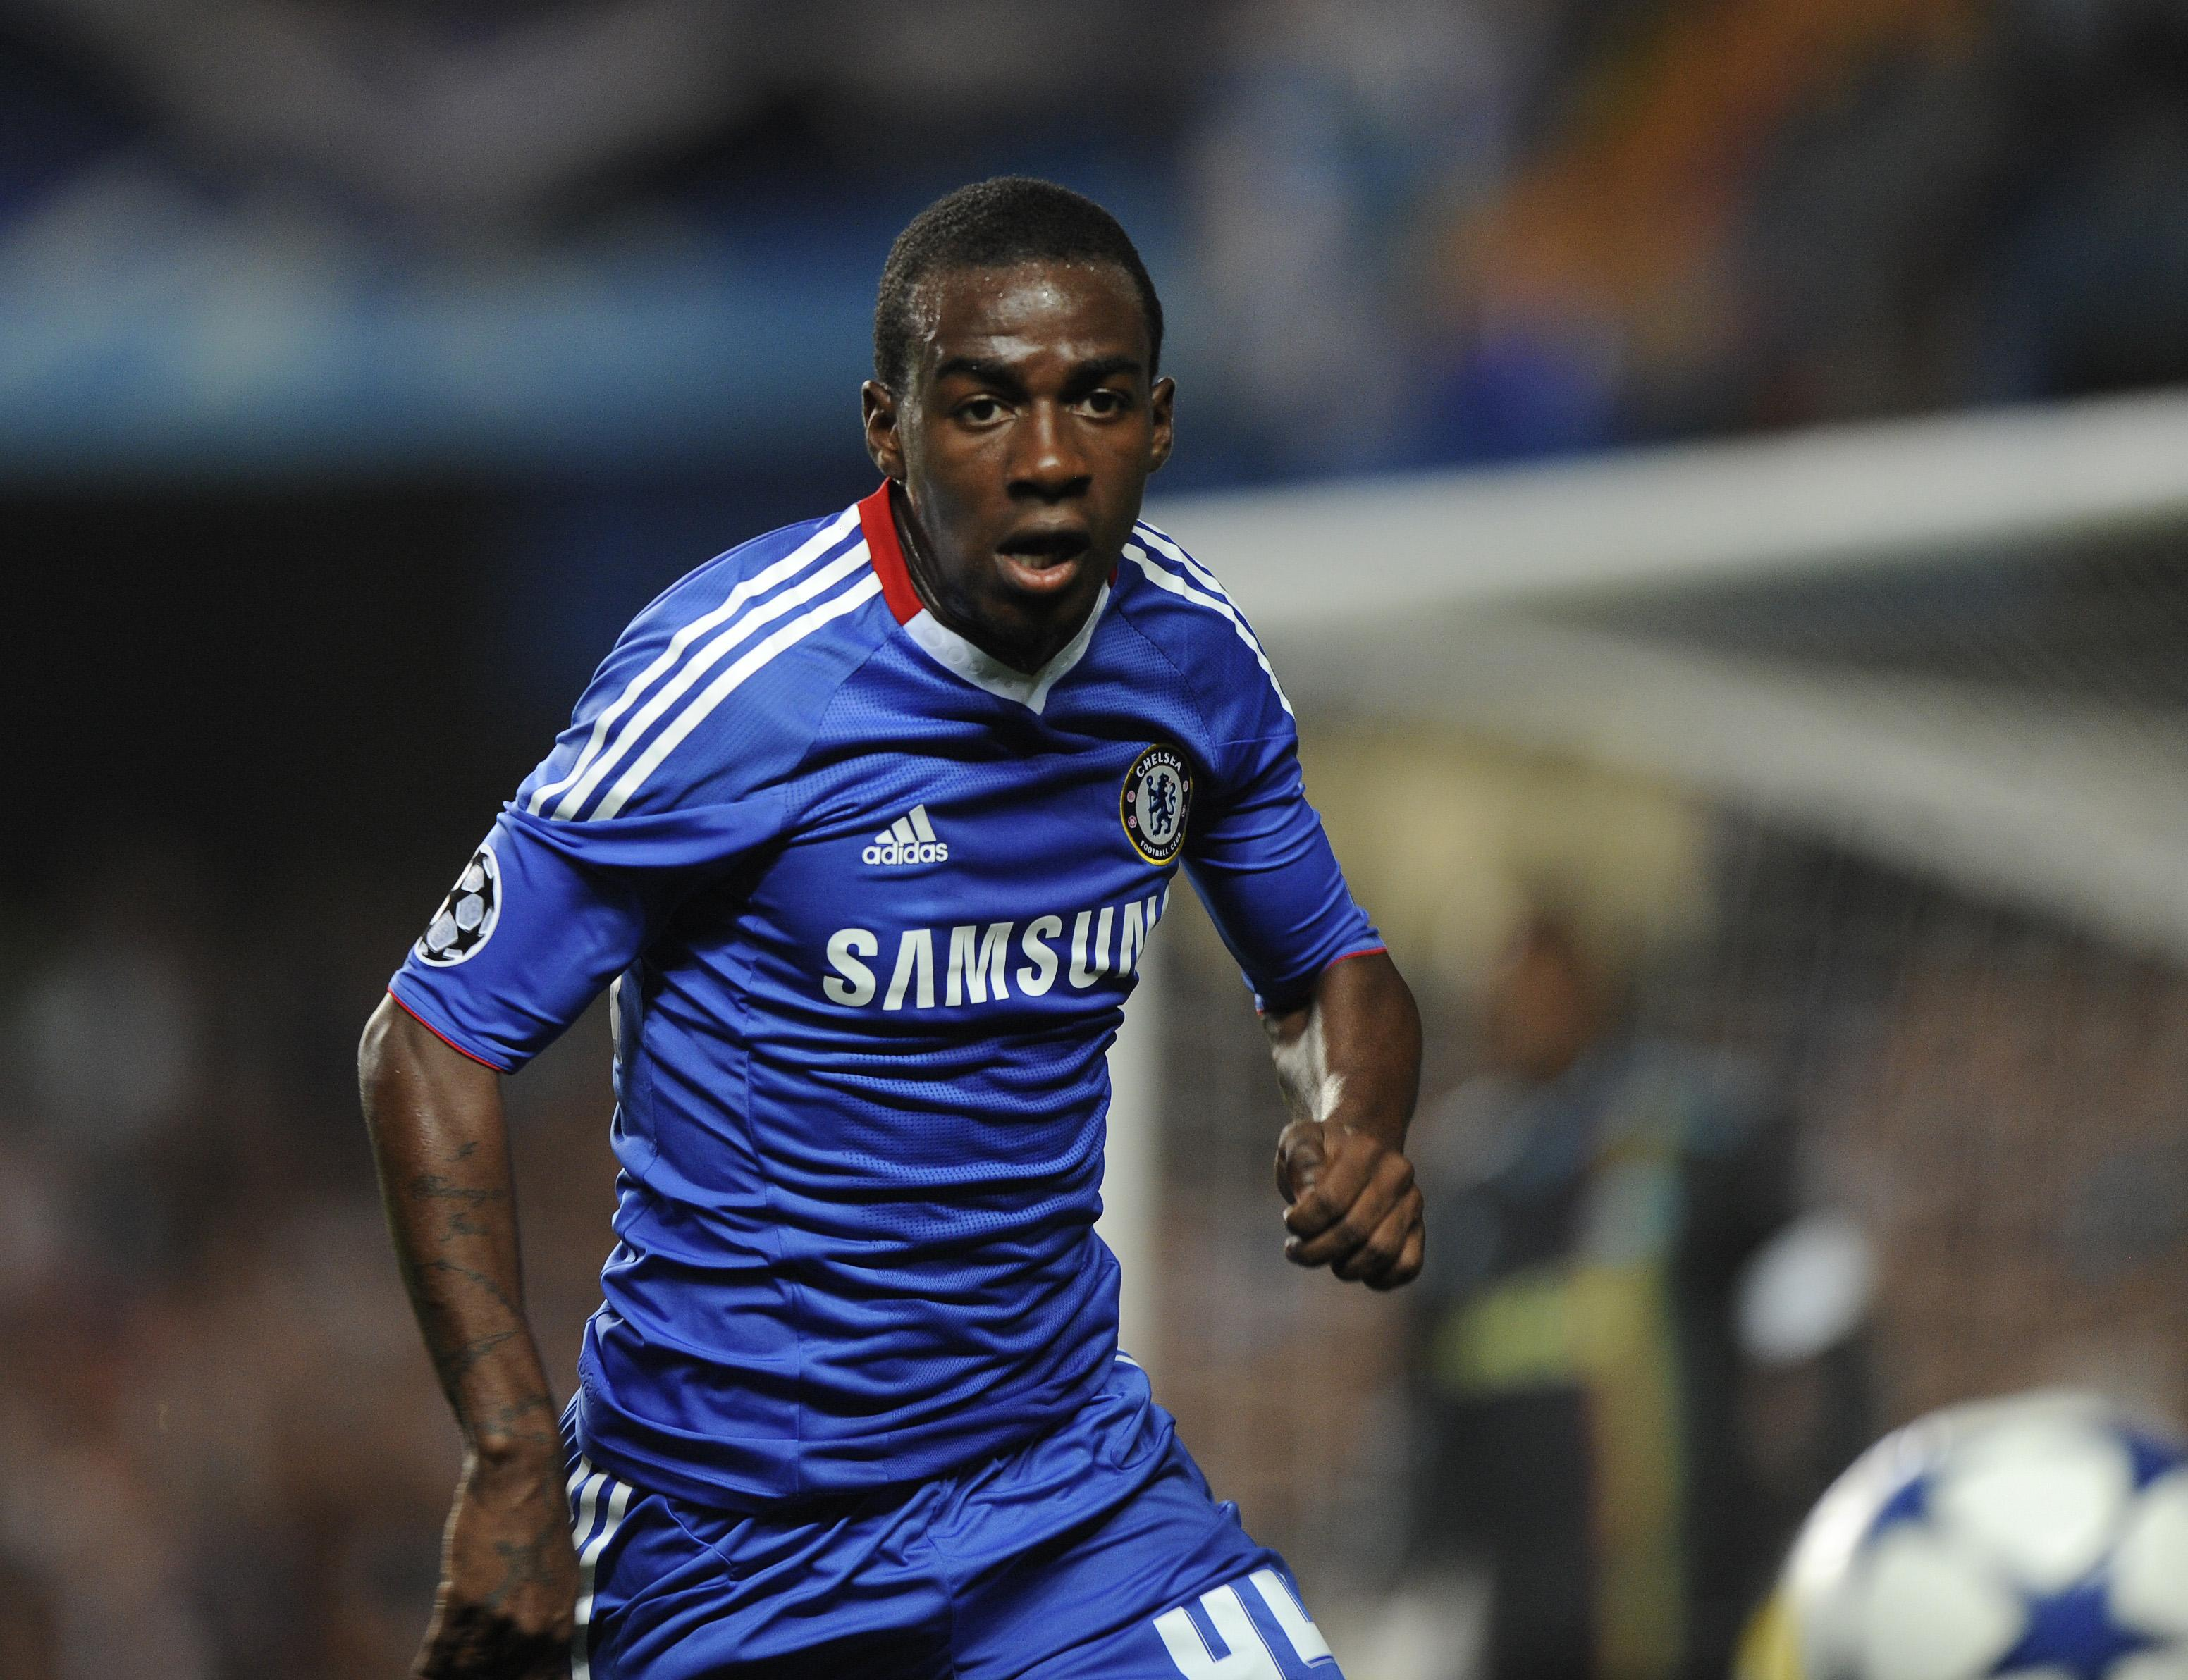 They risked a transfer ban for the sake of Gael Kakuta. BDE from Chelsea